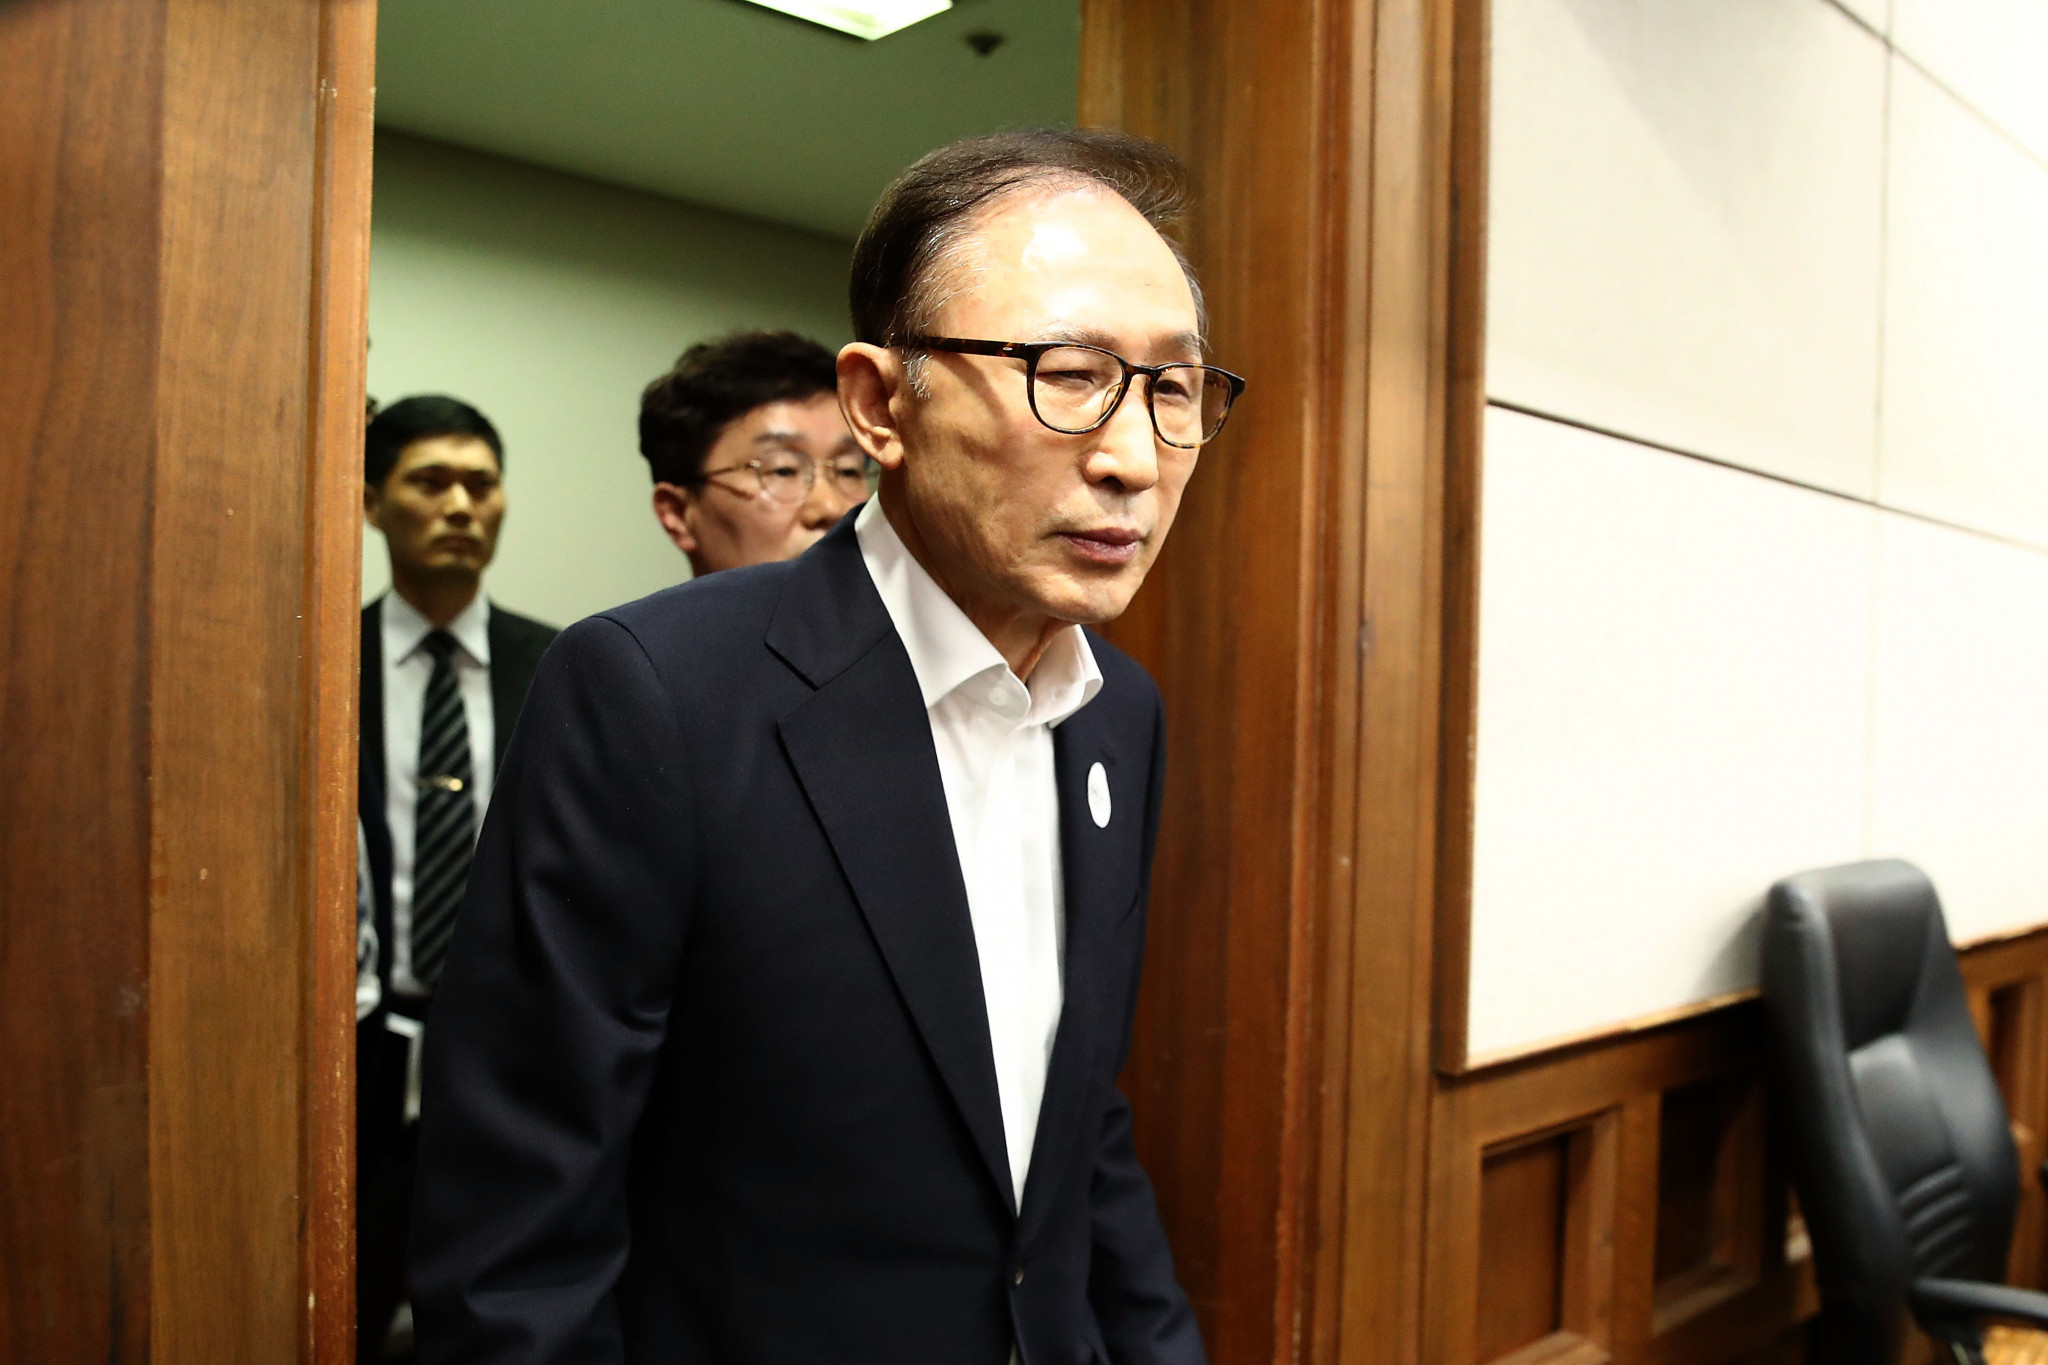 Lee Myung-bak appears for his court hearing in Seoul ©Getty Images